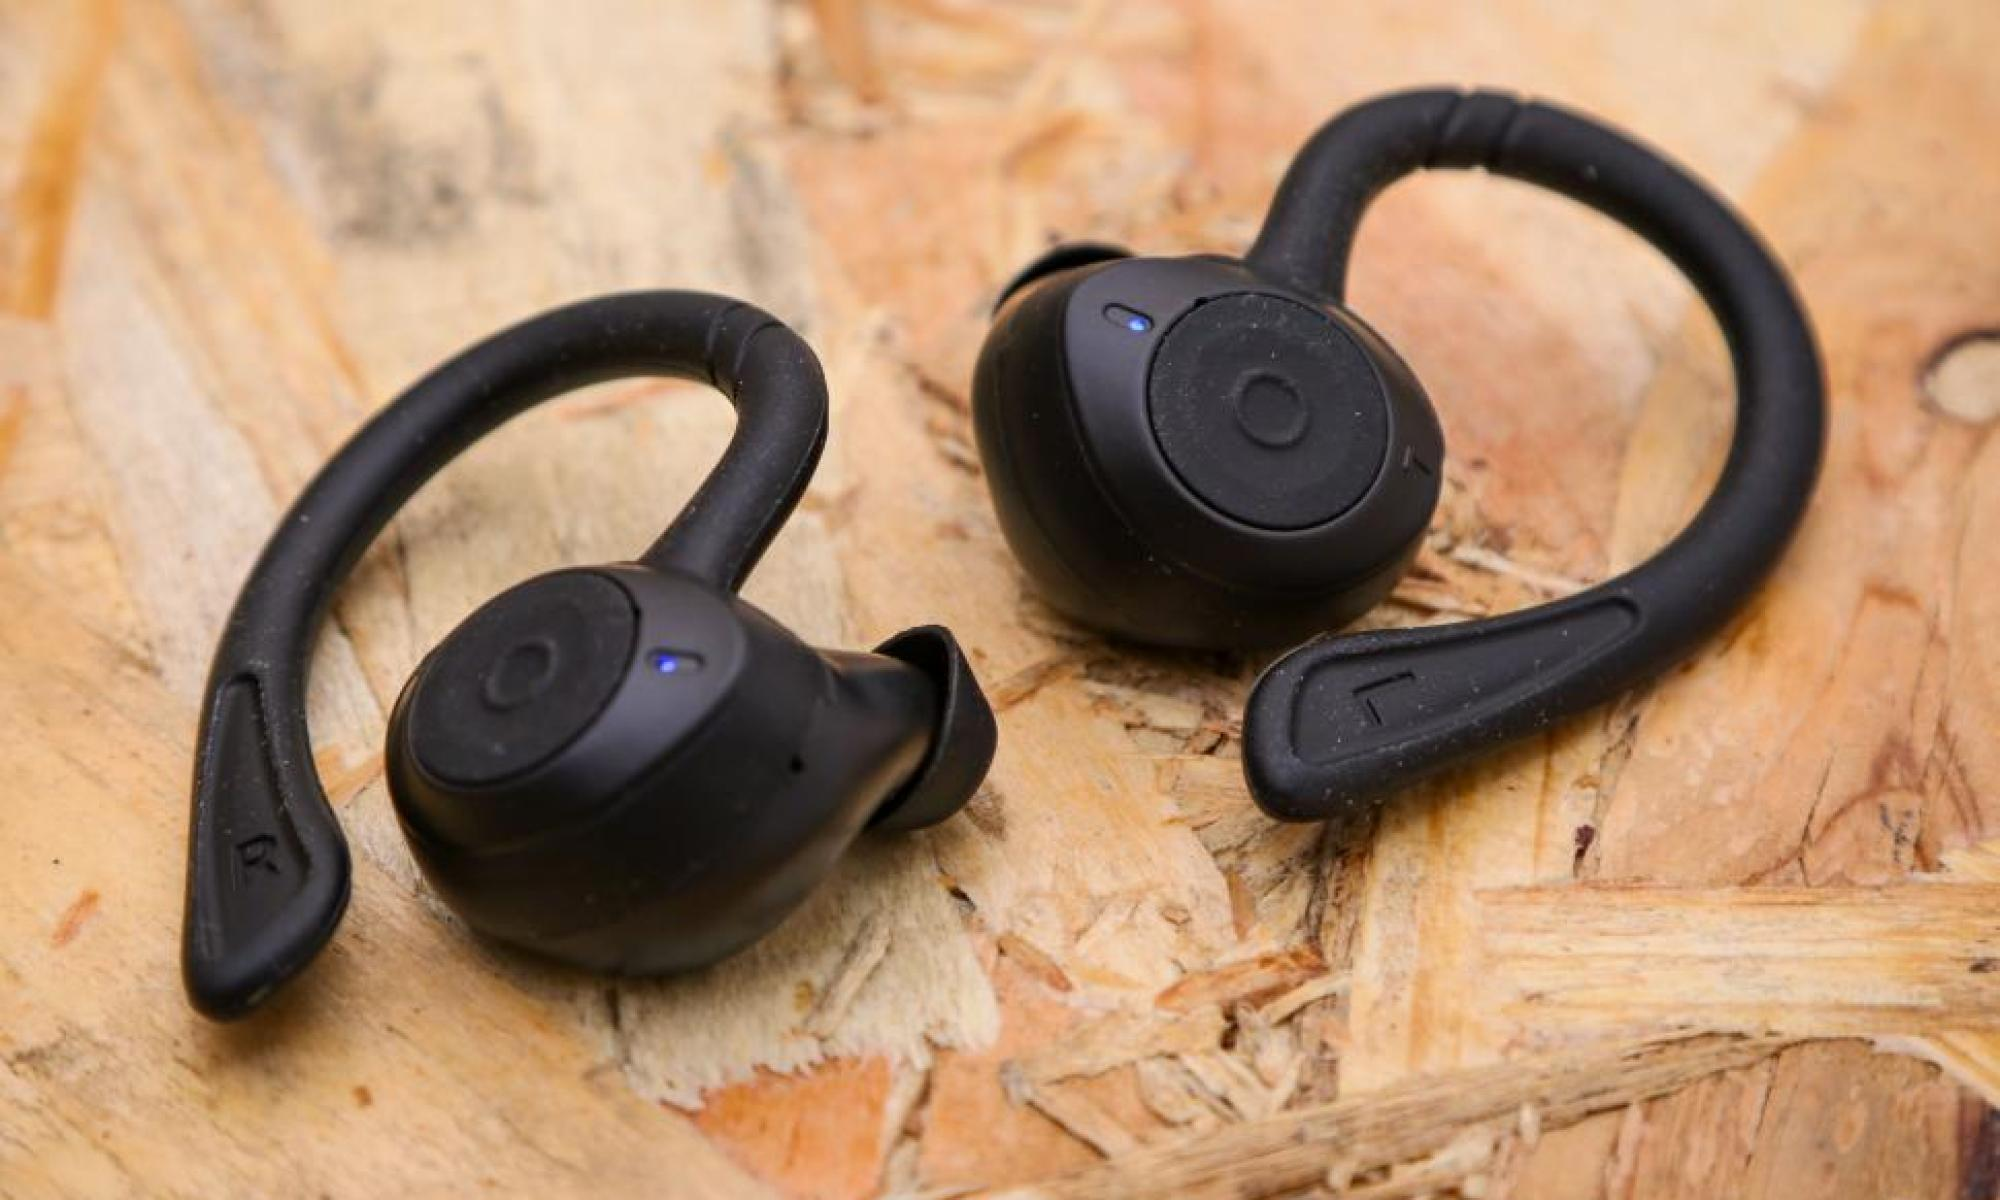 HolyHigh Wireless Earbuds